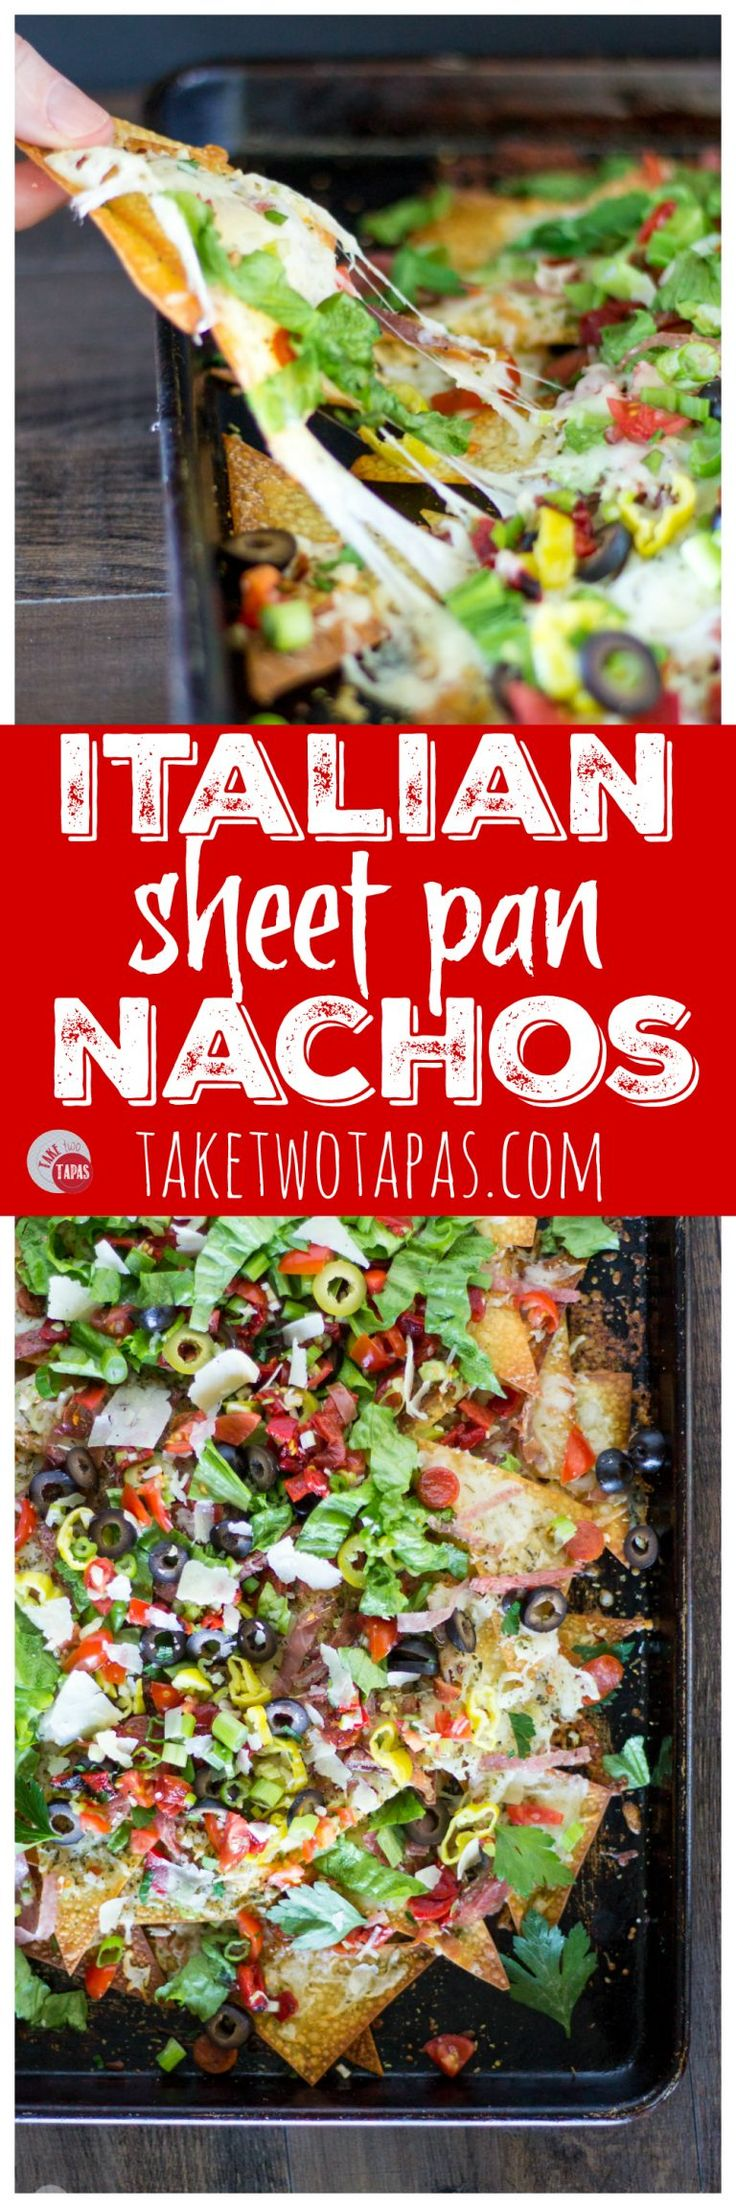 Your favorite Italian Sub Sandwich has been transformed into nachos! Wonton chips hold your favorite toppings like salami, pepperoni, prosciutto, and cheese for a sandwich you can eat like nachos and share with your friends. Italian Sheet Pan Nachos Recipe   Take Two Tapas